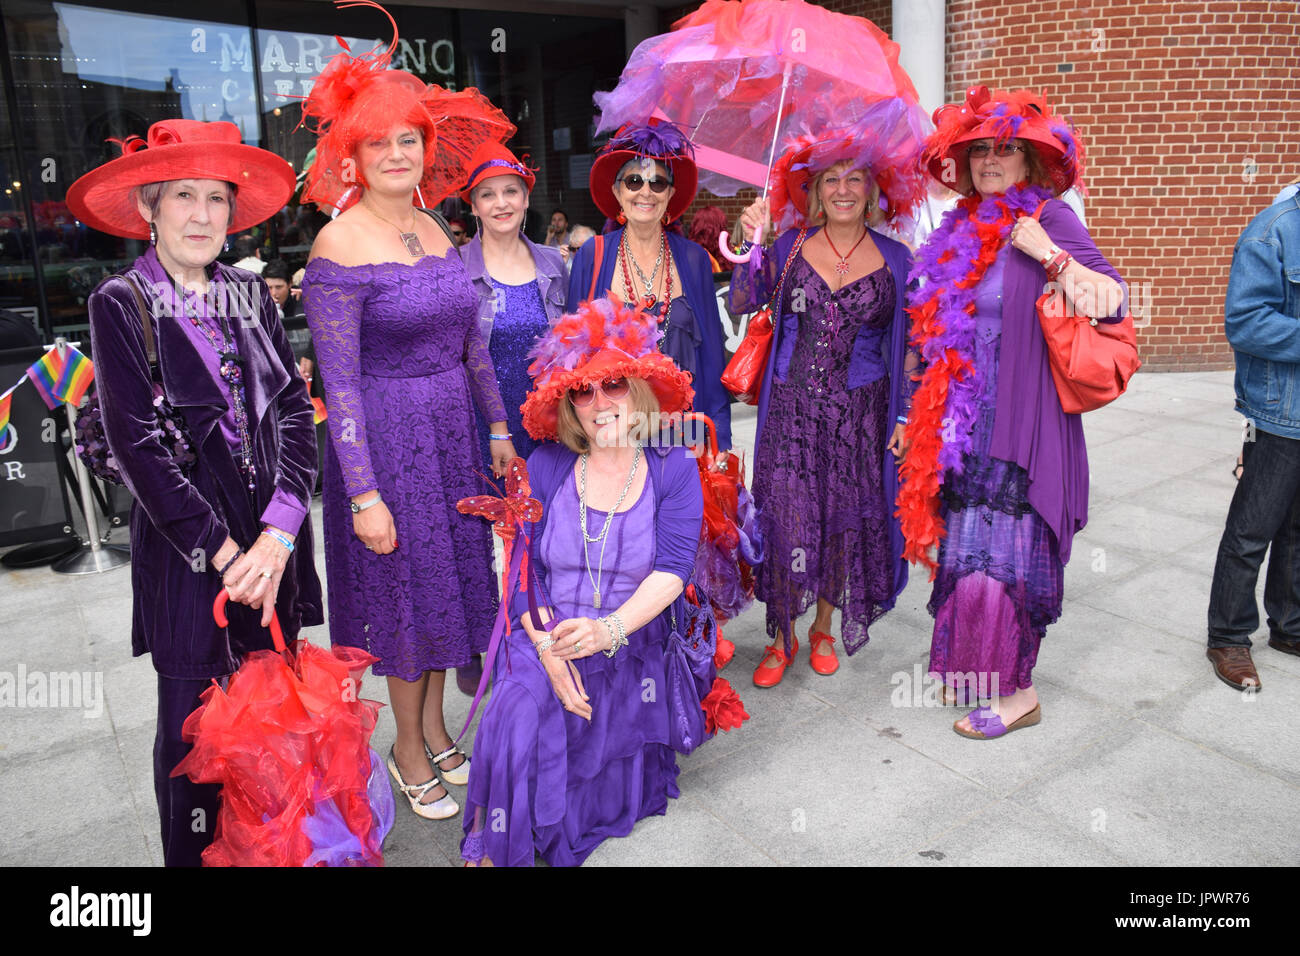 Red Hat Society Women Stock Photos   Red Hat Society Women Stock ... d91393886d3